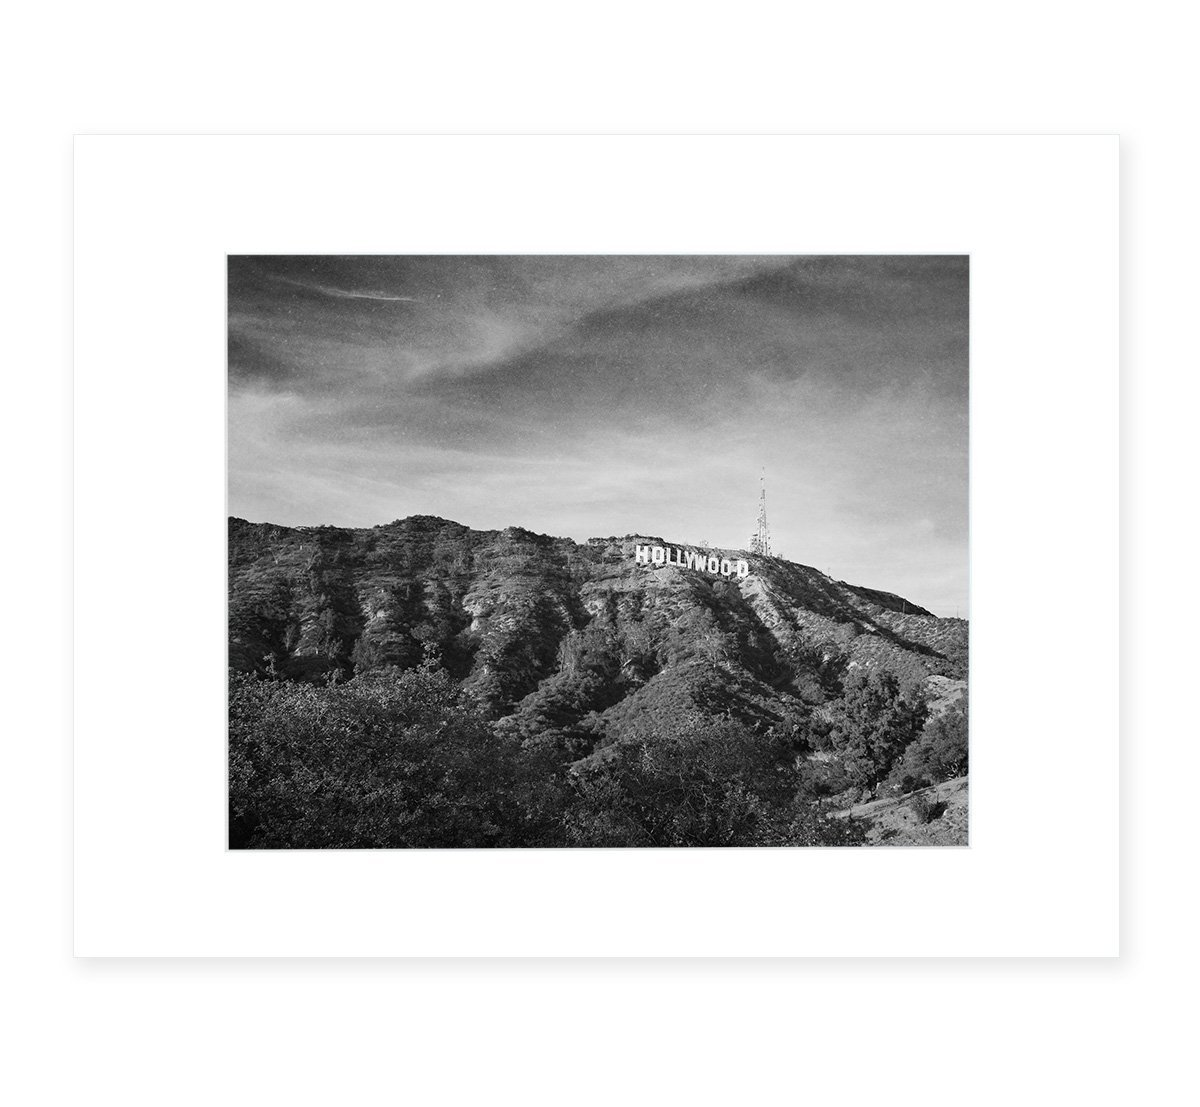 Hollywood Sign Black and White Vintage Wall Art, Tinseltown Landscape Decor 8x10 Matted Photographic Print (fits 11x14 frame), 'Old Hollywood'